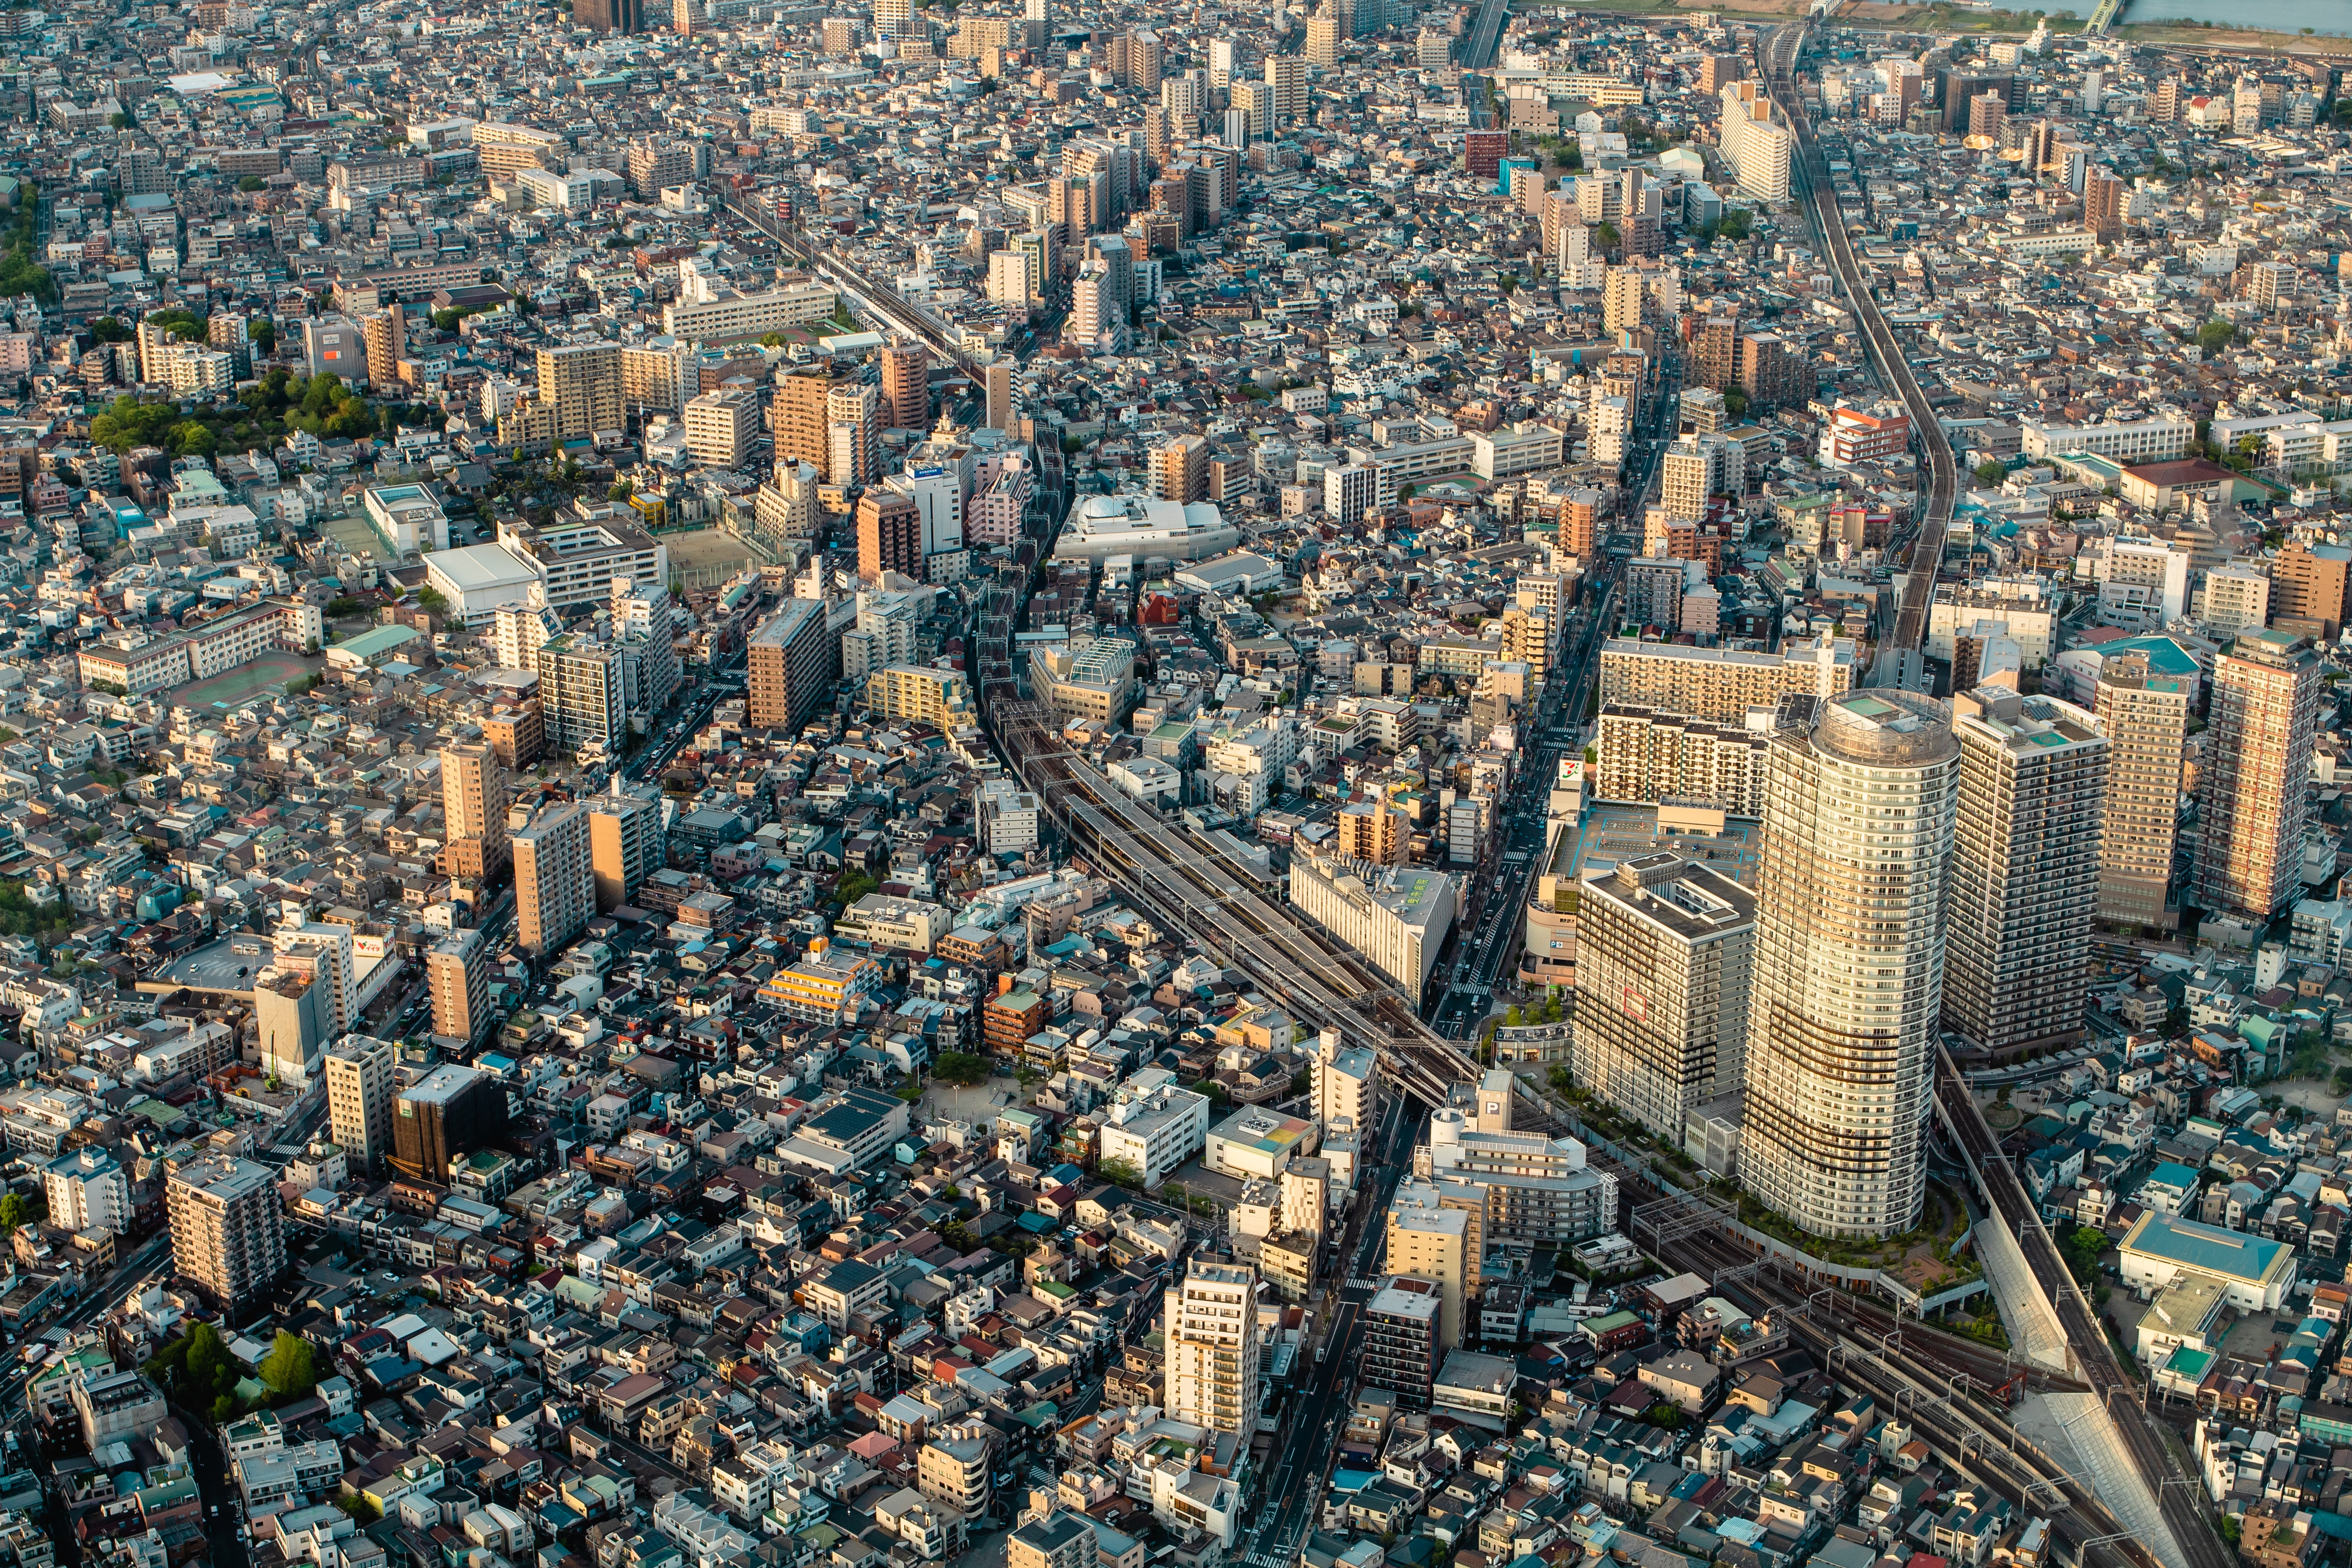 aerial photo of city during daytime